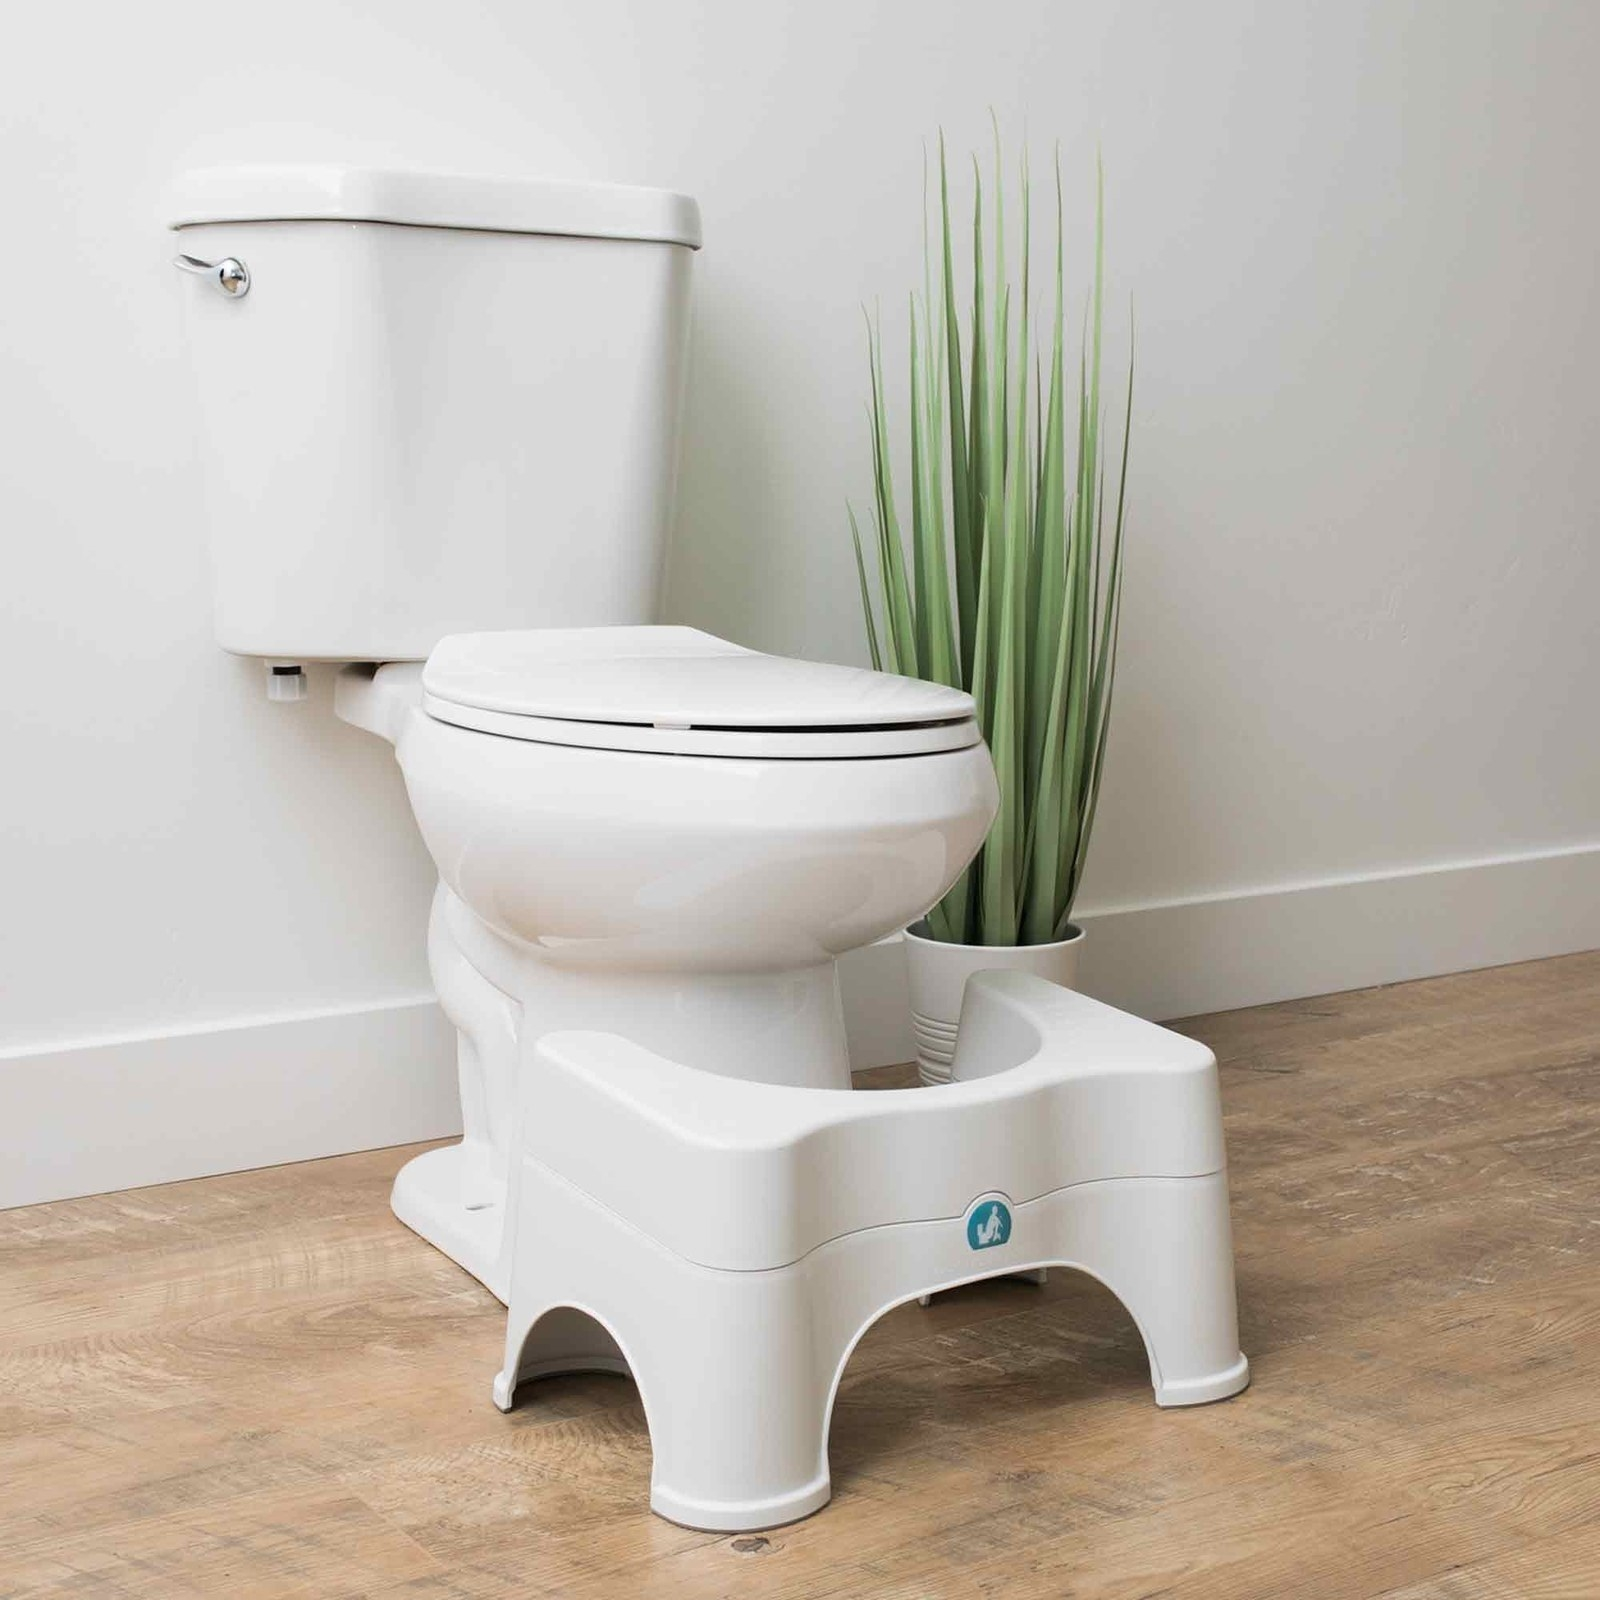 Squatty Potty at the base of a toilet